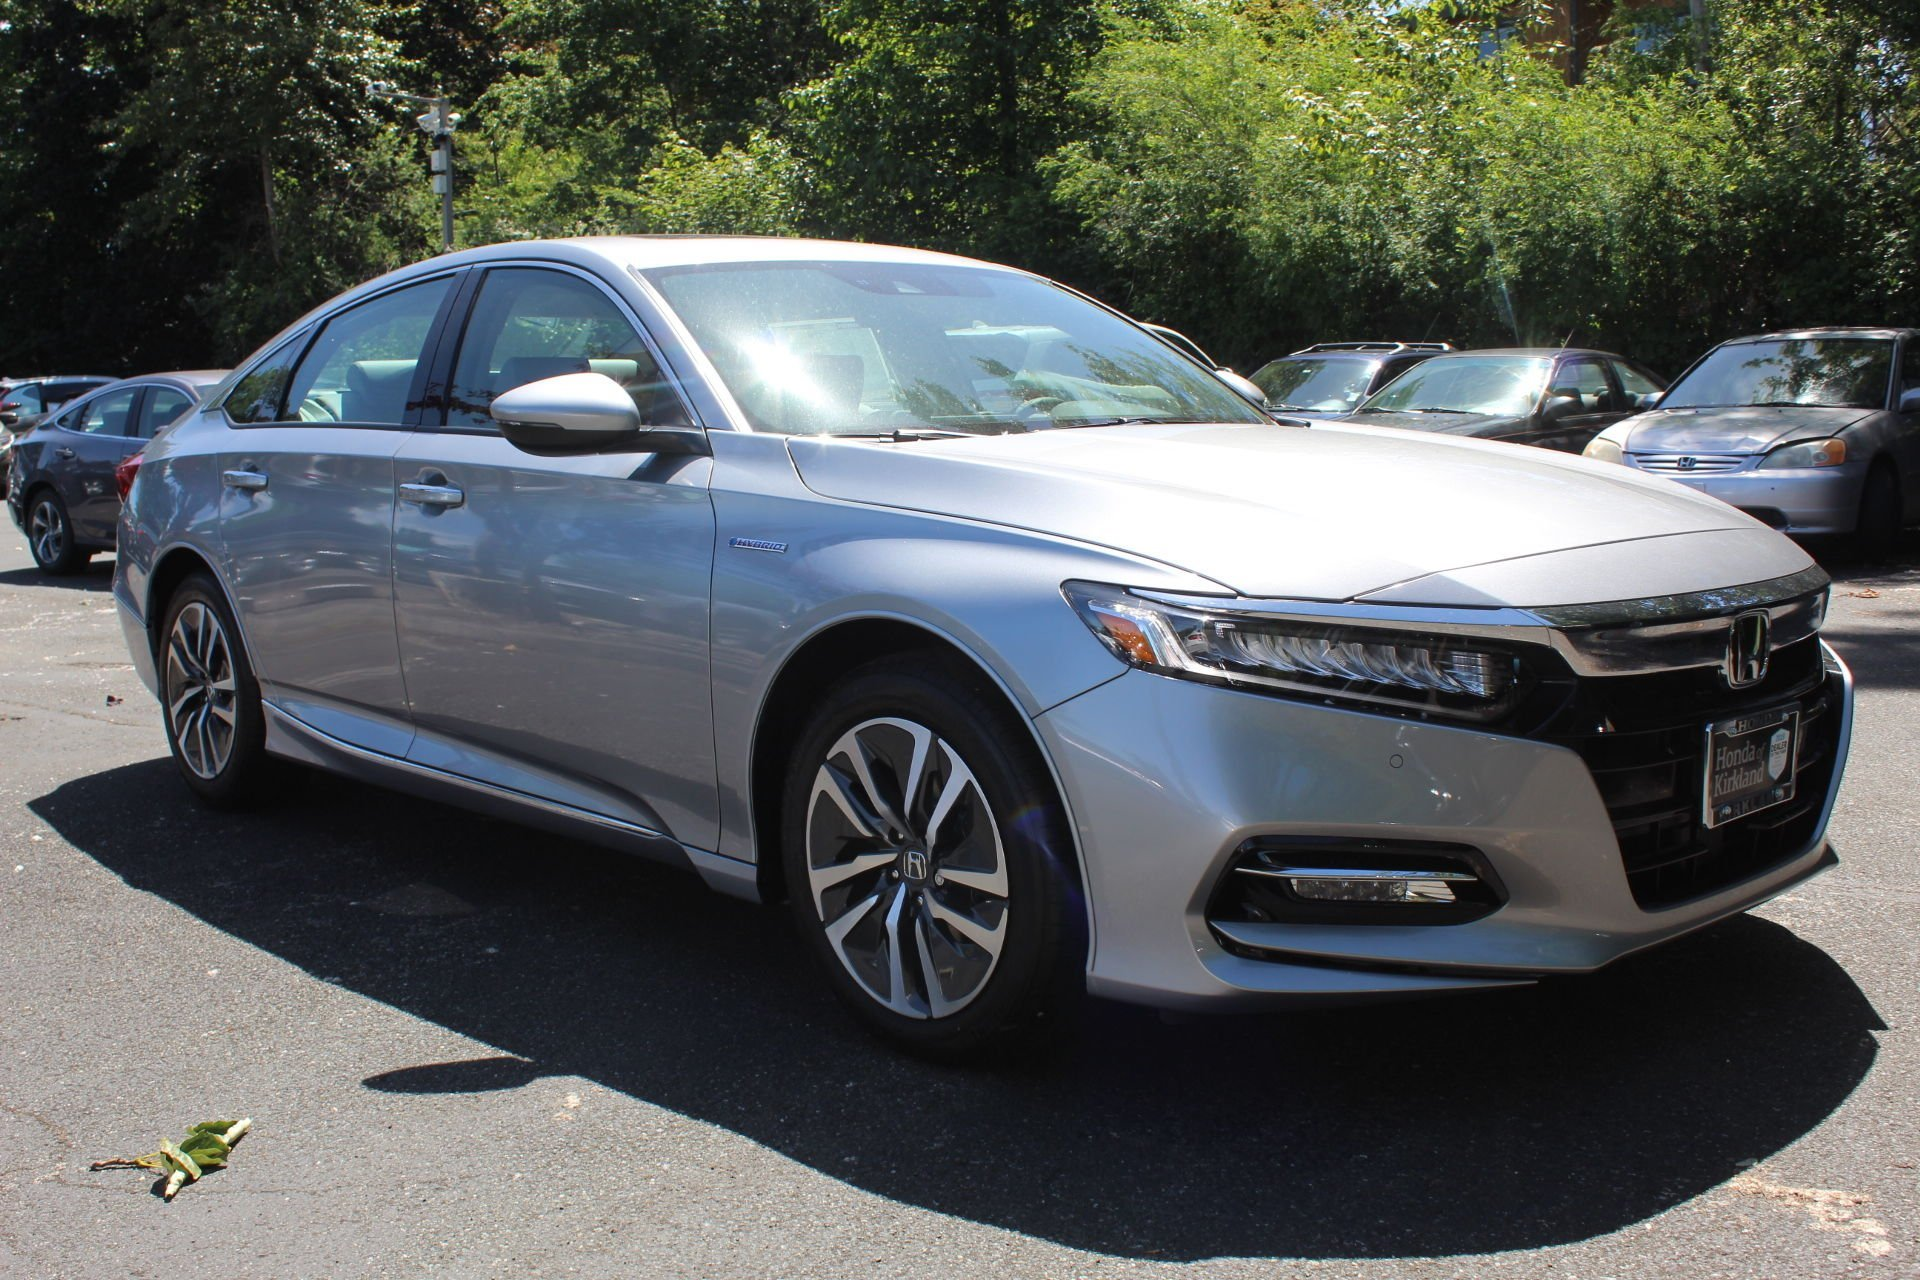 New 2019 Honda Accord Hybrid Touring EXL Hybrid Sedan for sale $34,990 at M and V Leasing in Brooklyn NY 11223 1